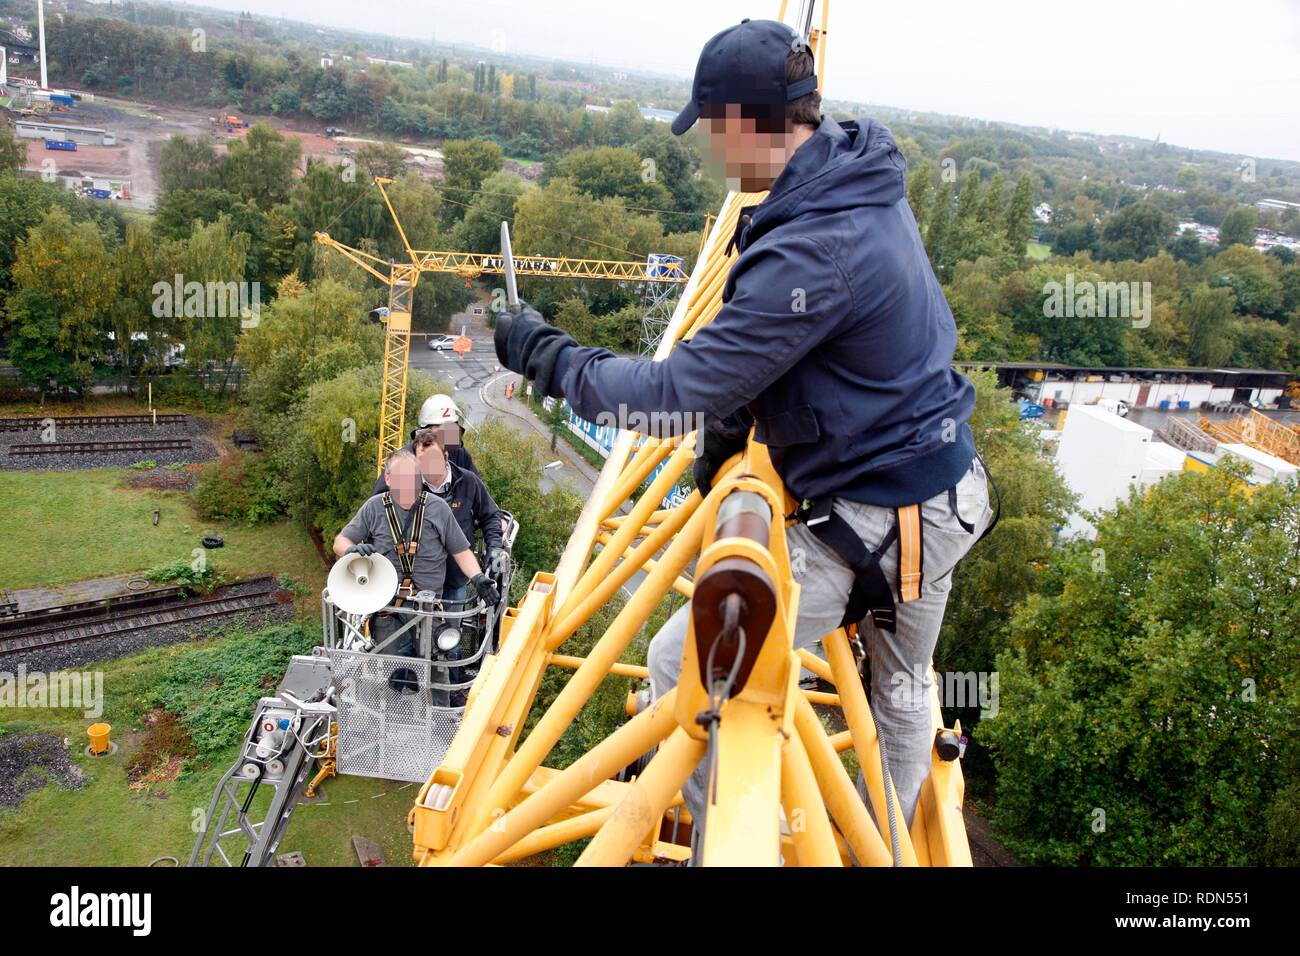 Special police unit negotiation group, operational rehearsal, a criminal has taken refuge on a construction crane and is - Stock Image